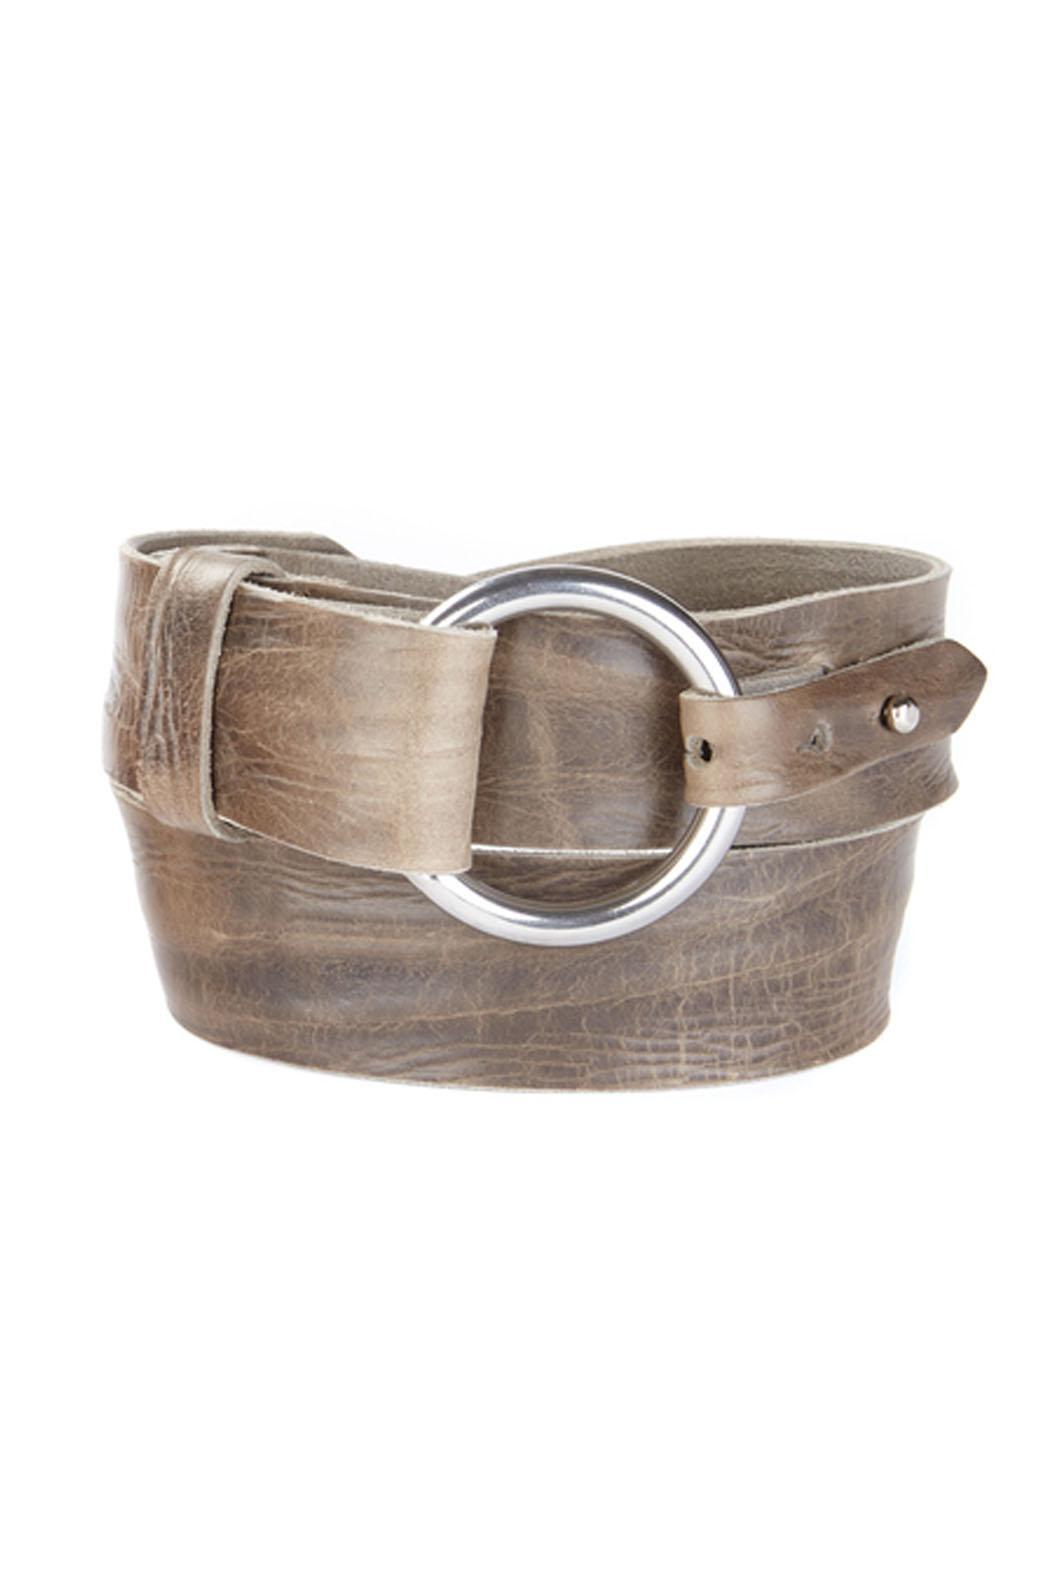 brave leather maeron leather belt from san francisco by